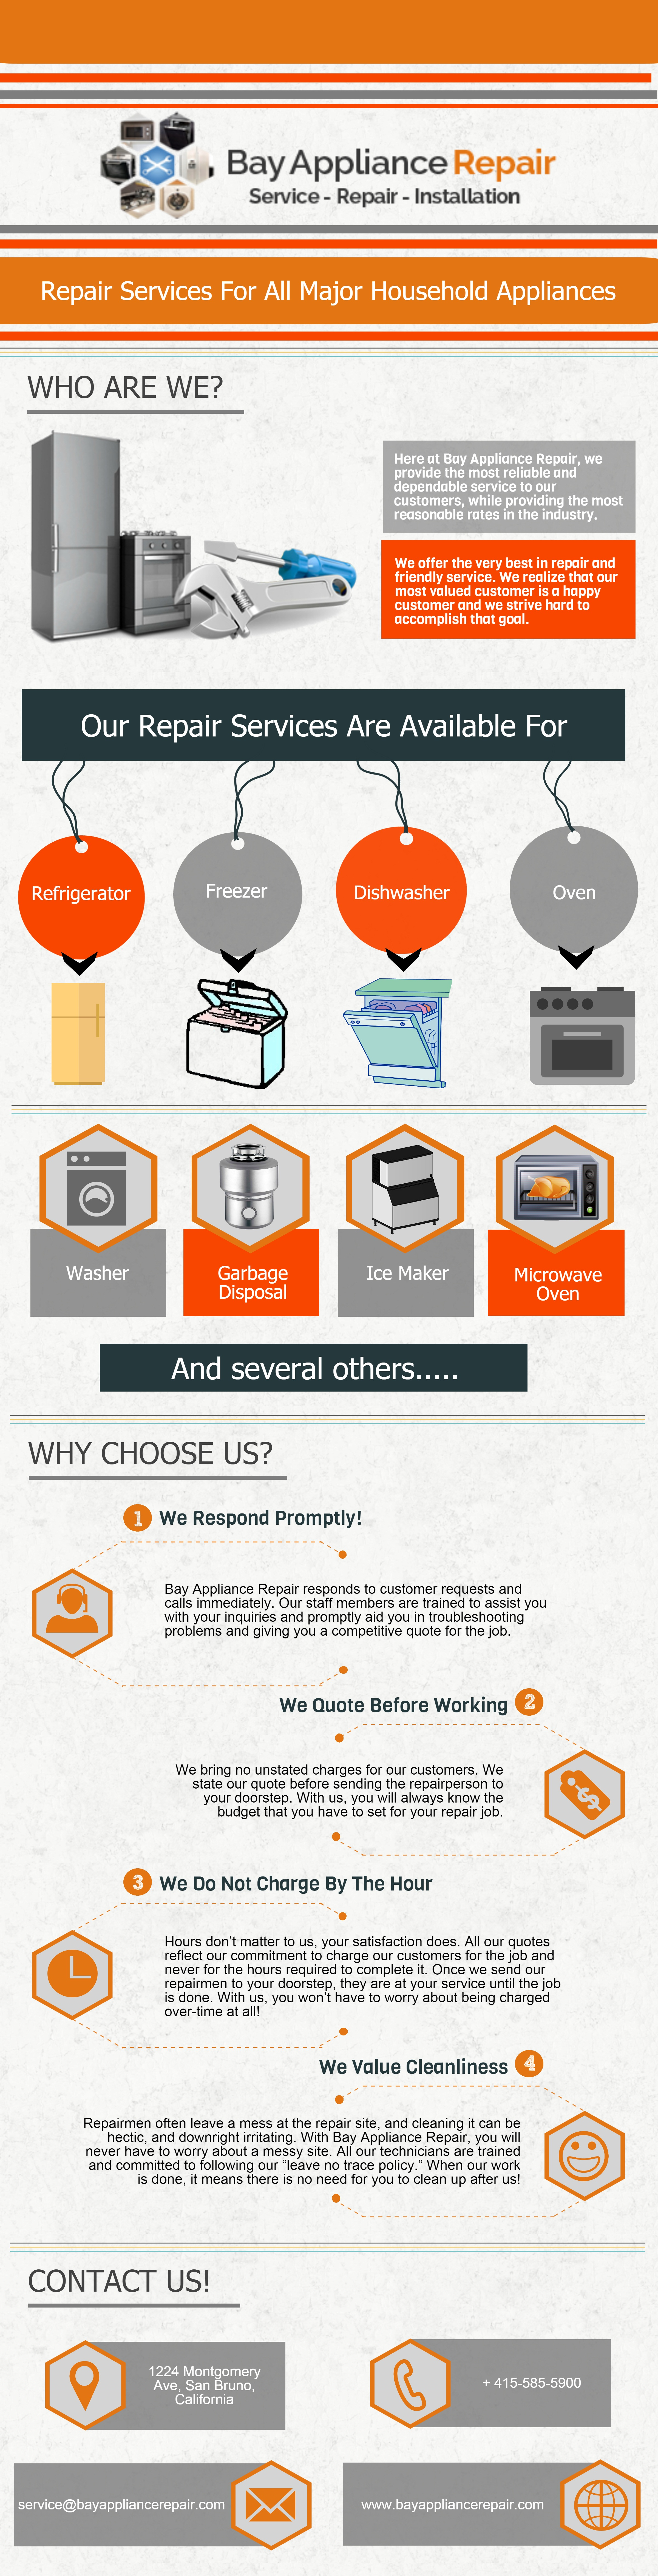 Bay appliance repair bayappliancerep on pinterest